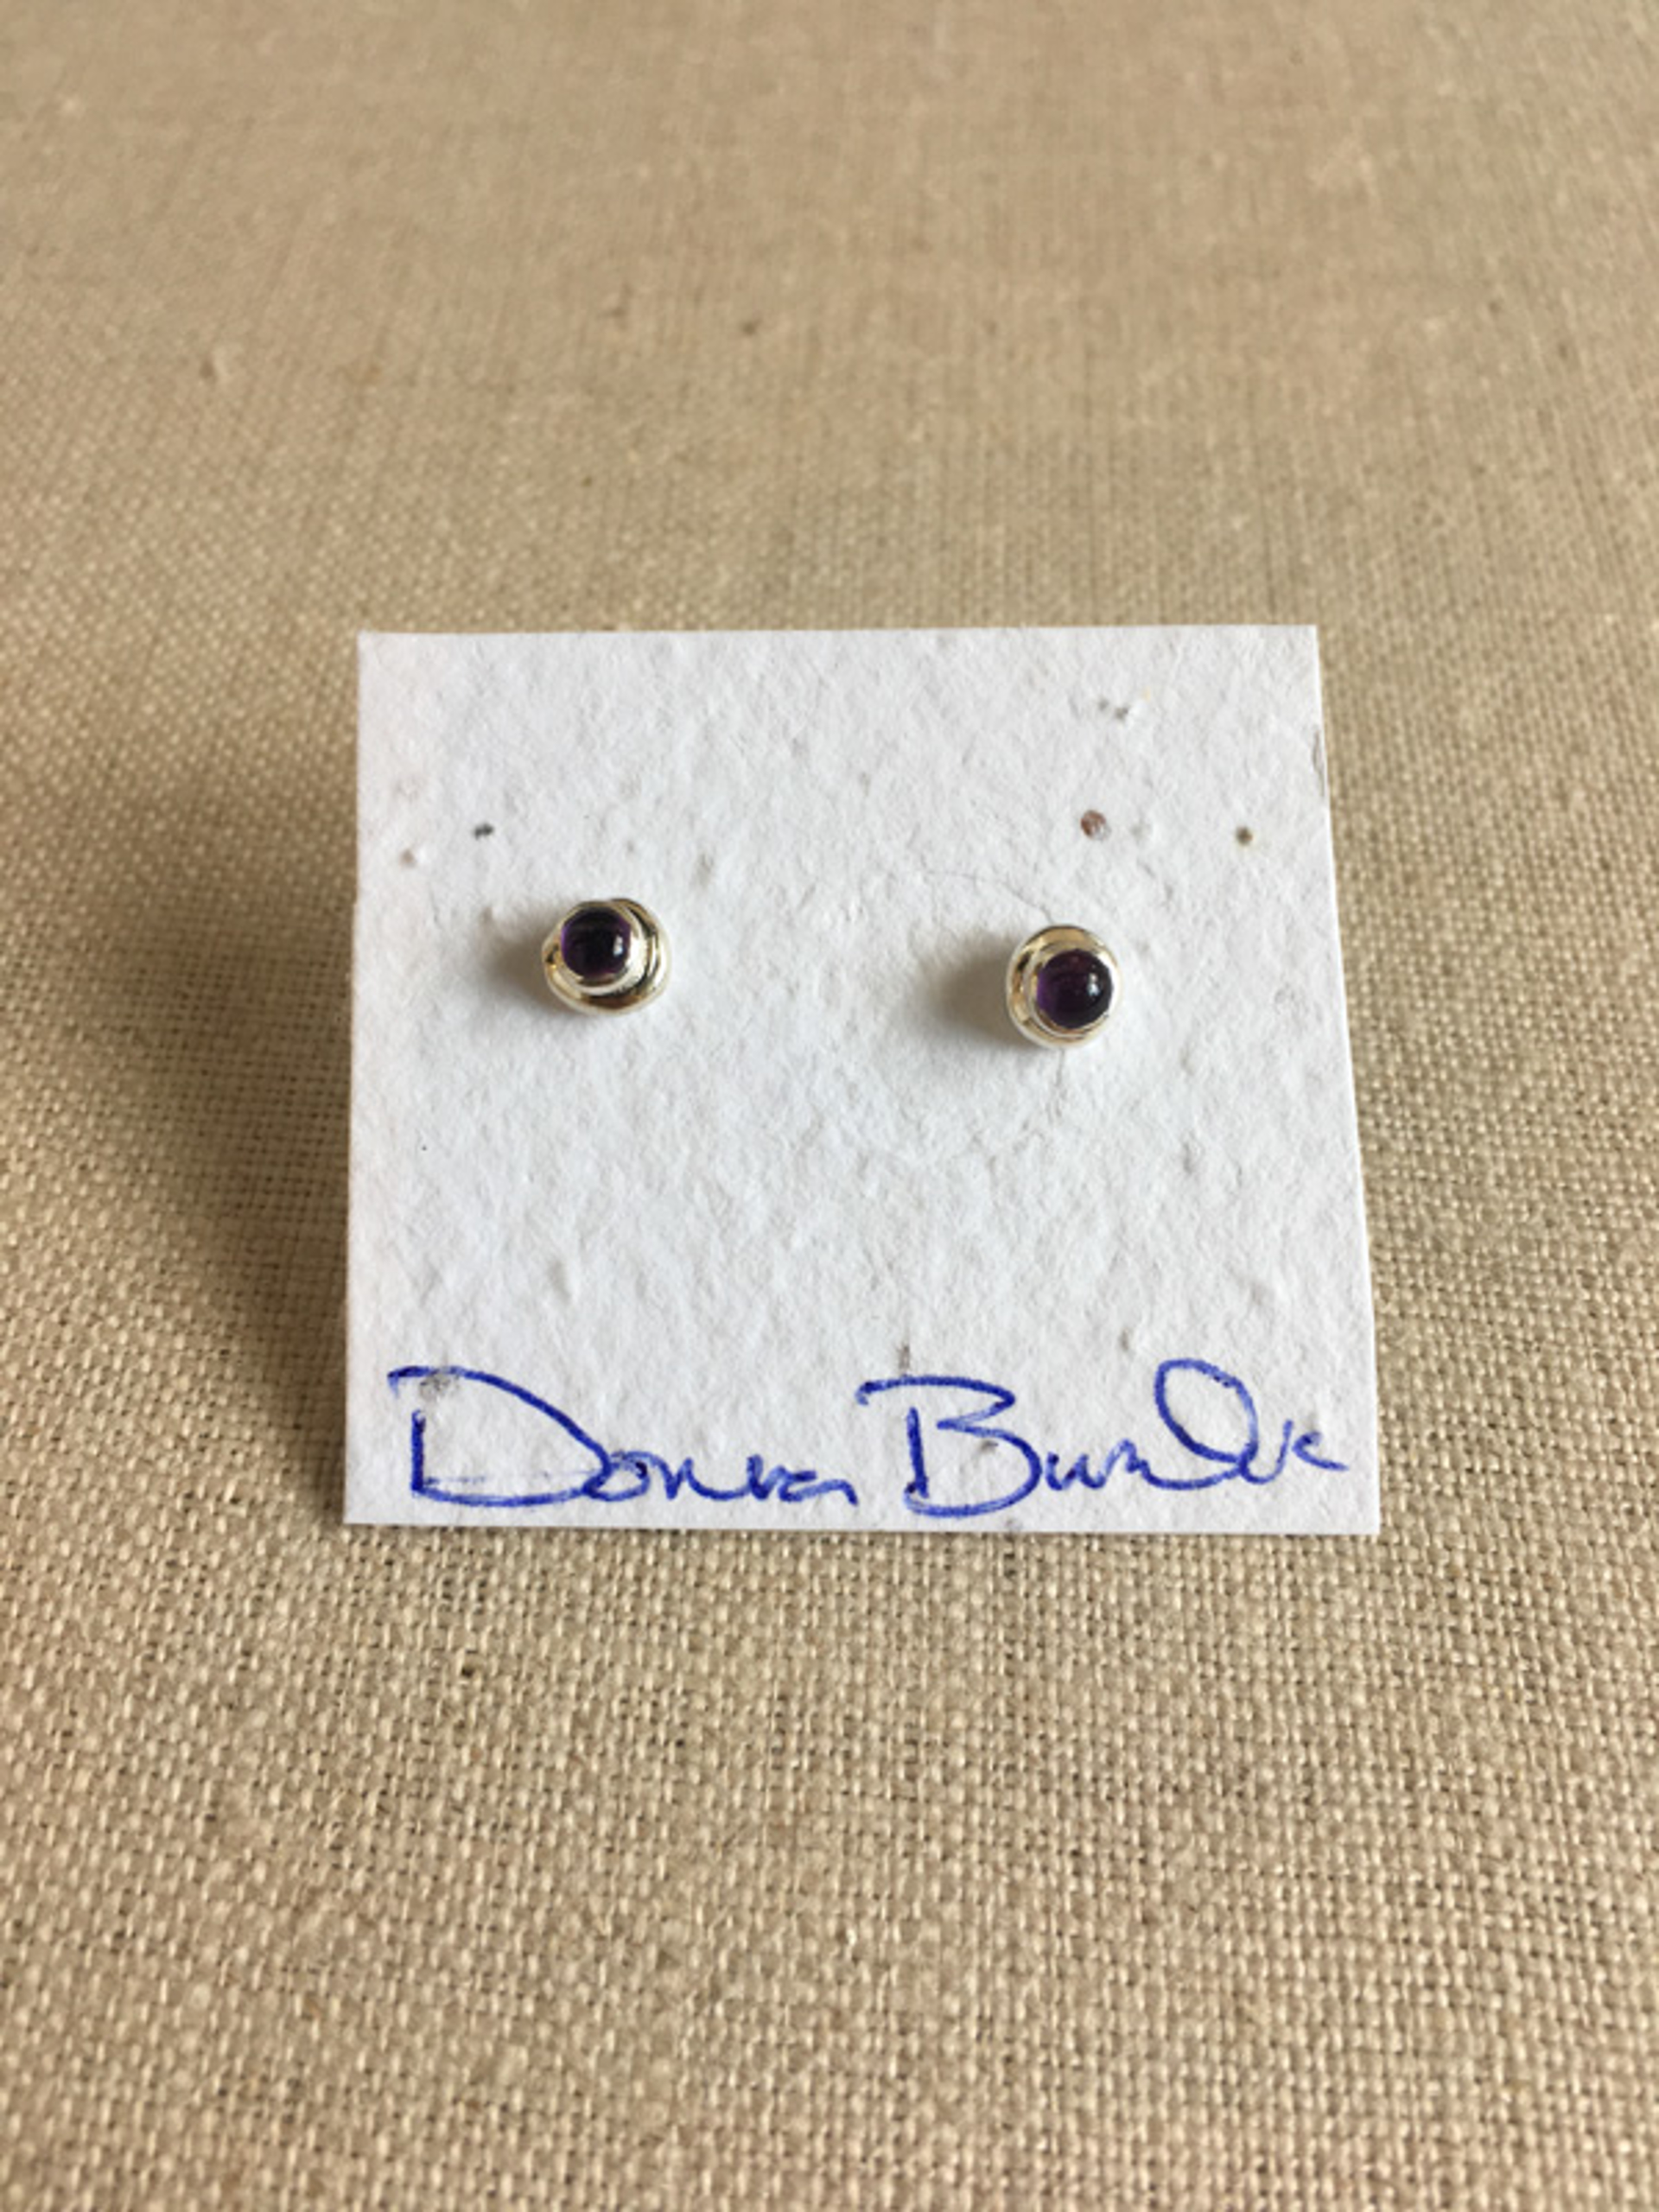 1386-6 Earrings by Donna Burdic